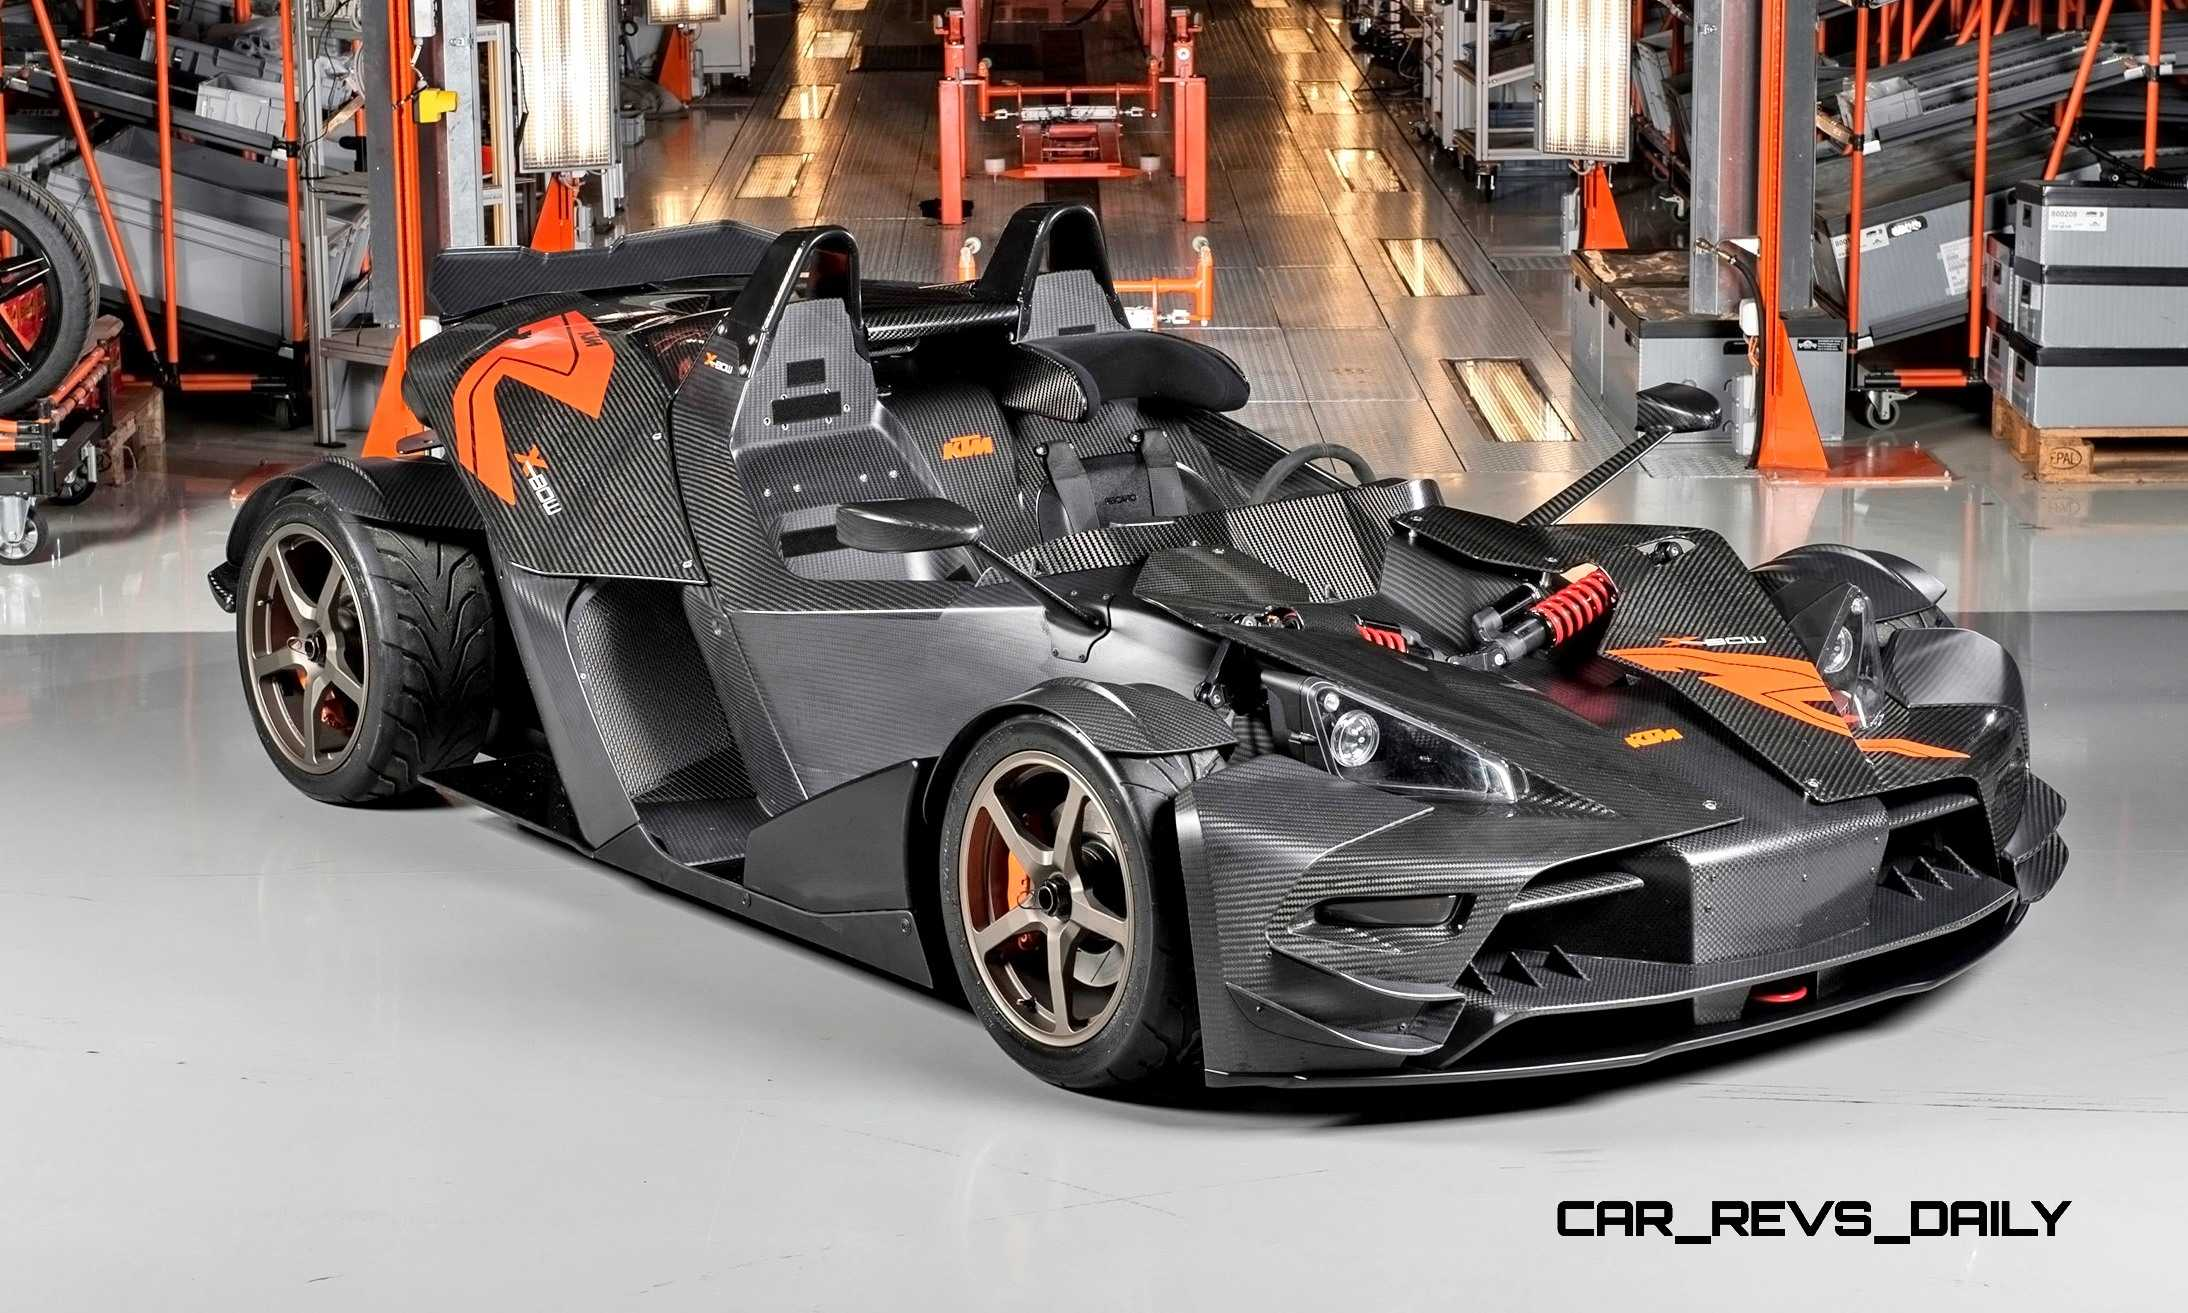 2015 KTM X Bow RR Is 400HP of Race Ready Speed With Full Track Upfit